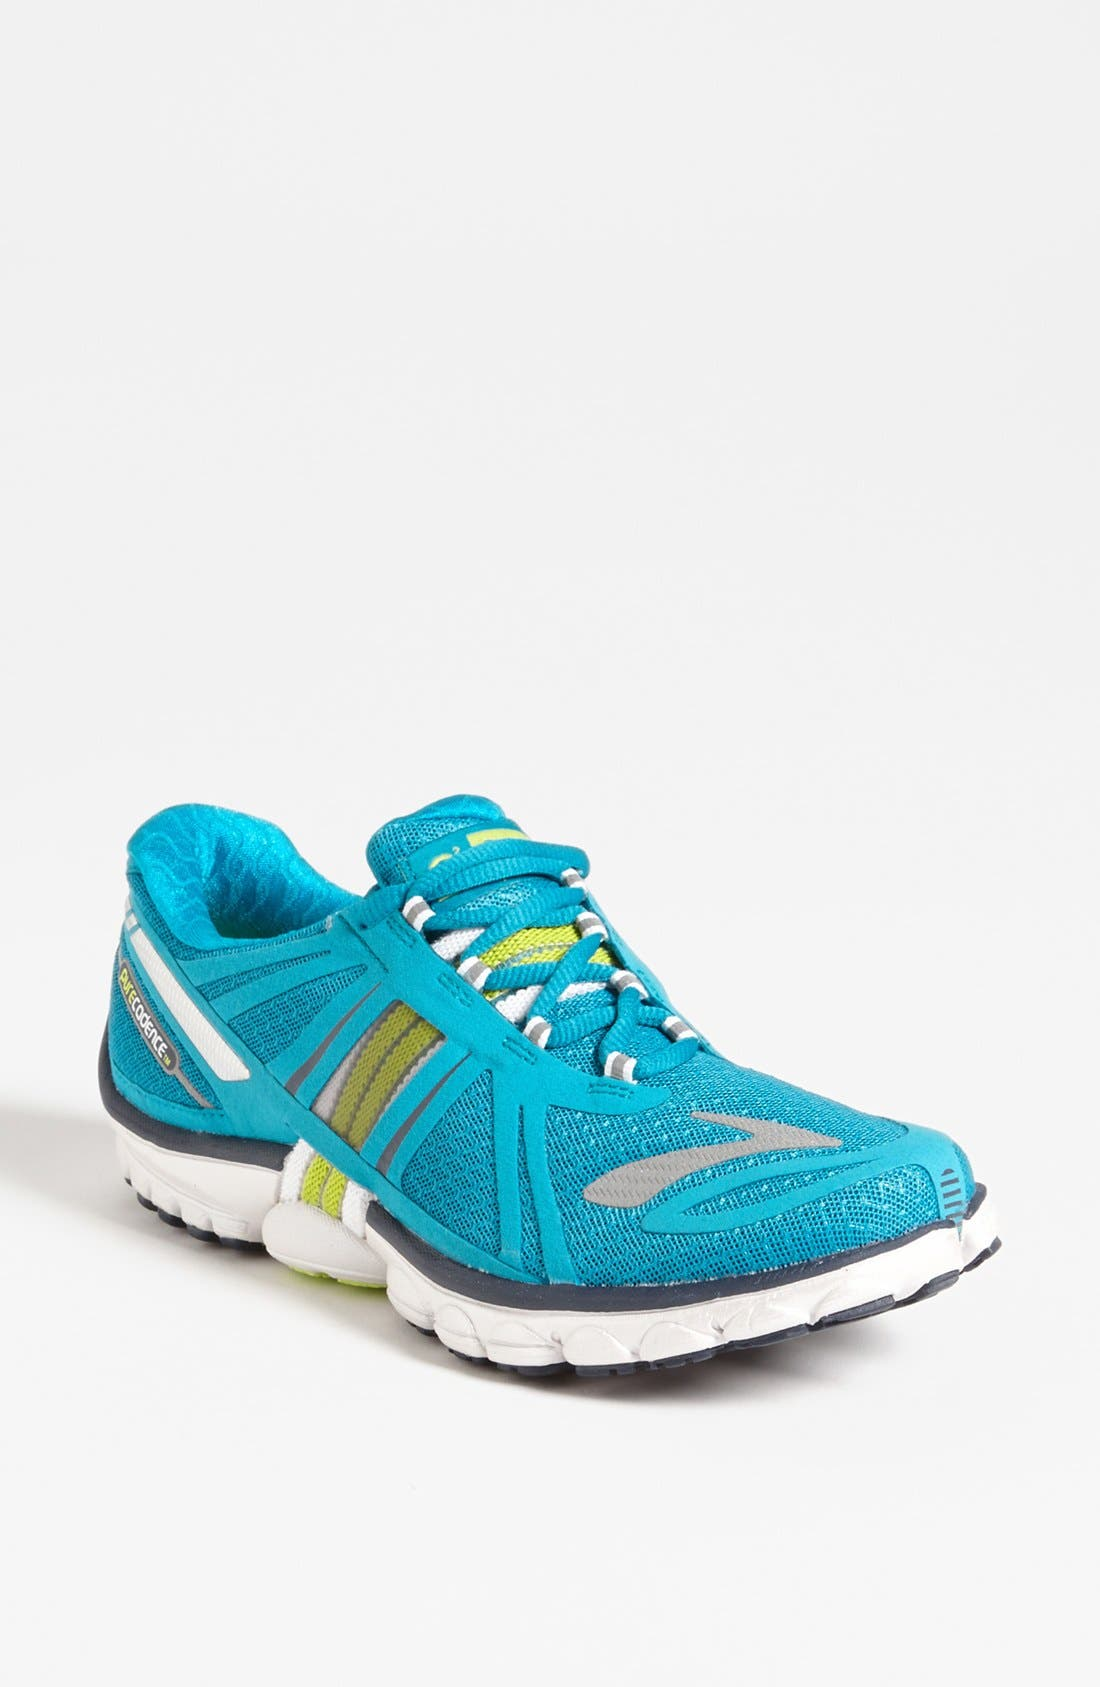 Main Image - Brooks 'Pure Cadence 2' Running Shoe (Women)(Regular Retail Price: $119.95)